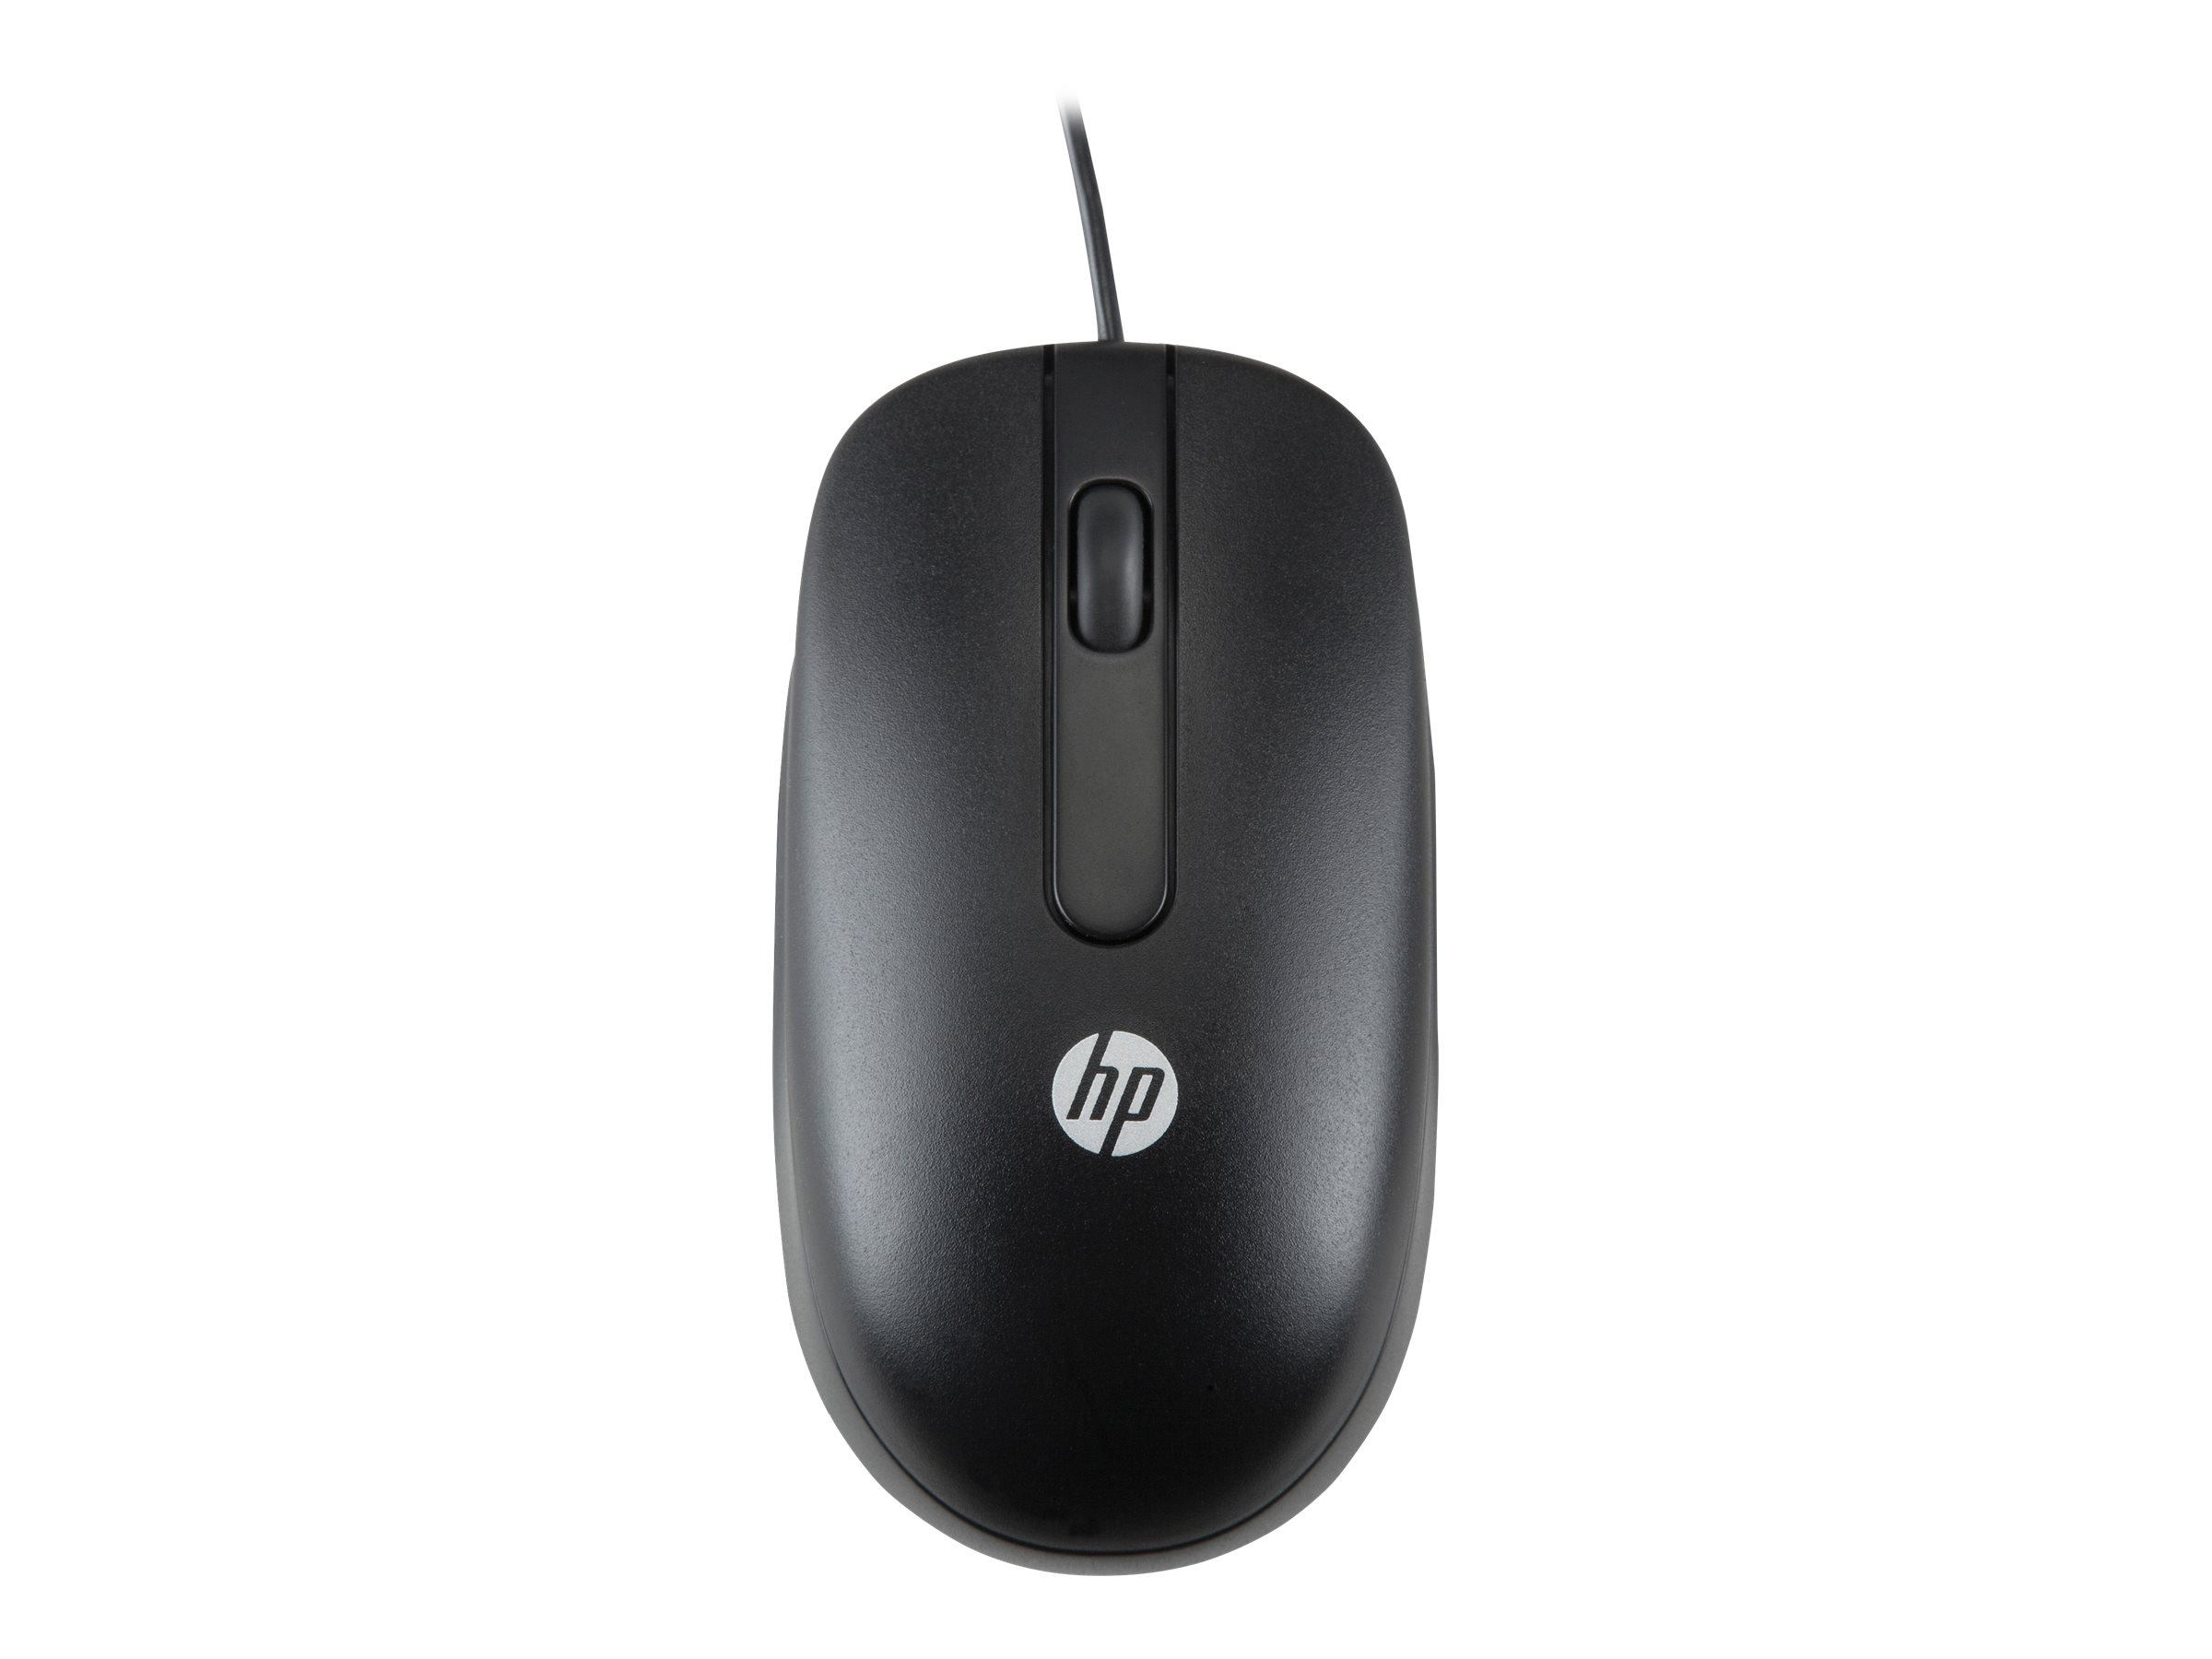 HP - Maus - Laser - kabelgebunden - USB - für Elite Slice, Slice for Meeting Rooms; EliteOne 1000 G1; Workstation Z2, Z8 G4